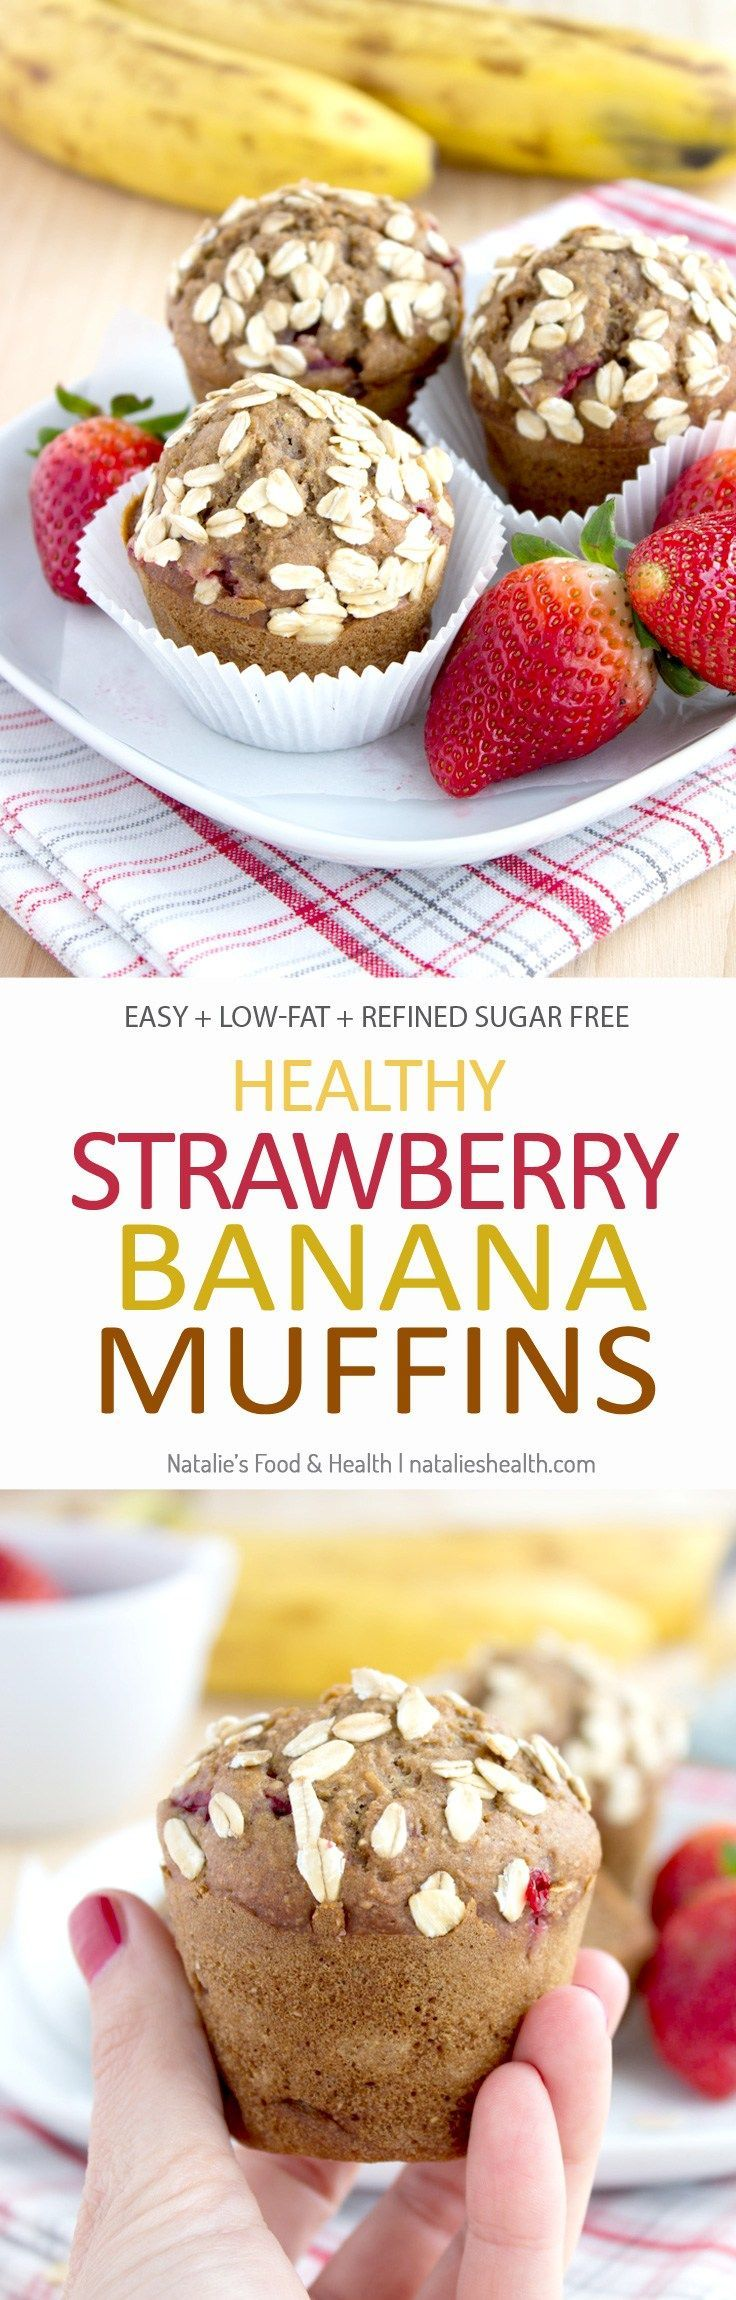 Super sweet and moist, perfectly fragrant Strawberry Banana Muffins made with all HEALTHY ingredients, refined sugar-free, packed with fresh strawberries. These muffins are easy to make yet delicious dessert that truly screams Spring. CLICK to read more o